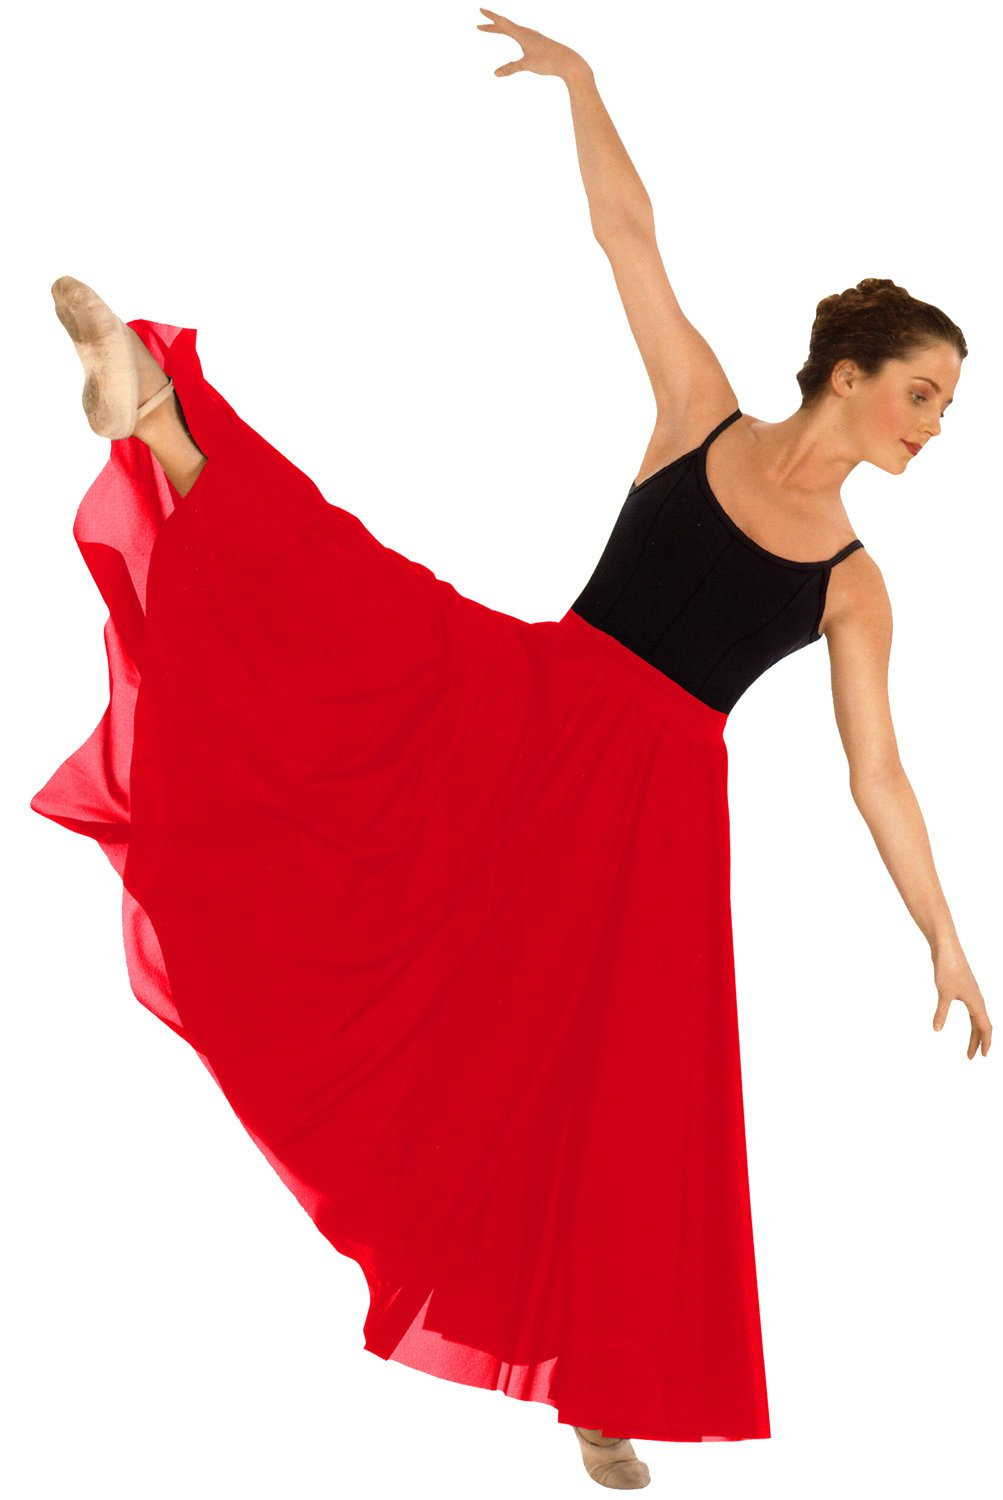 Eurotard 13674 Adult Triple Panel Lyrical Skirt,Red,One Size Fits All by Eurotard